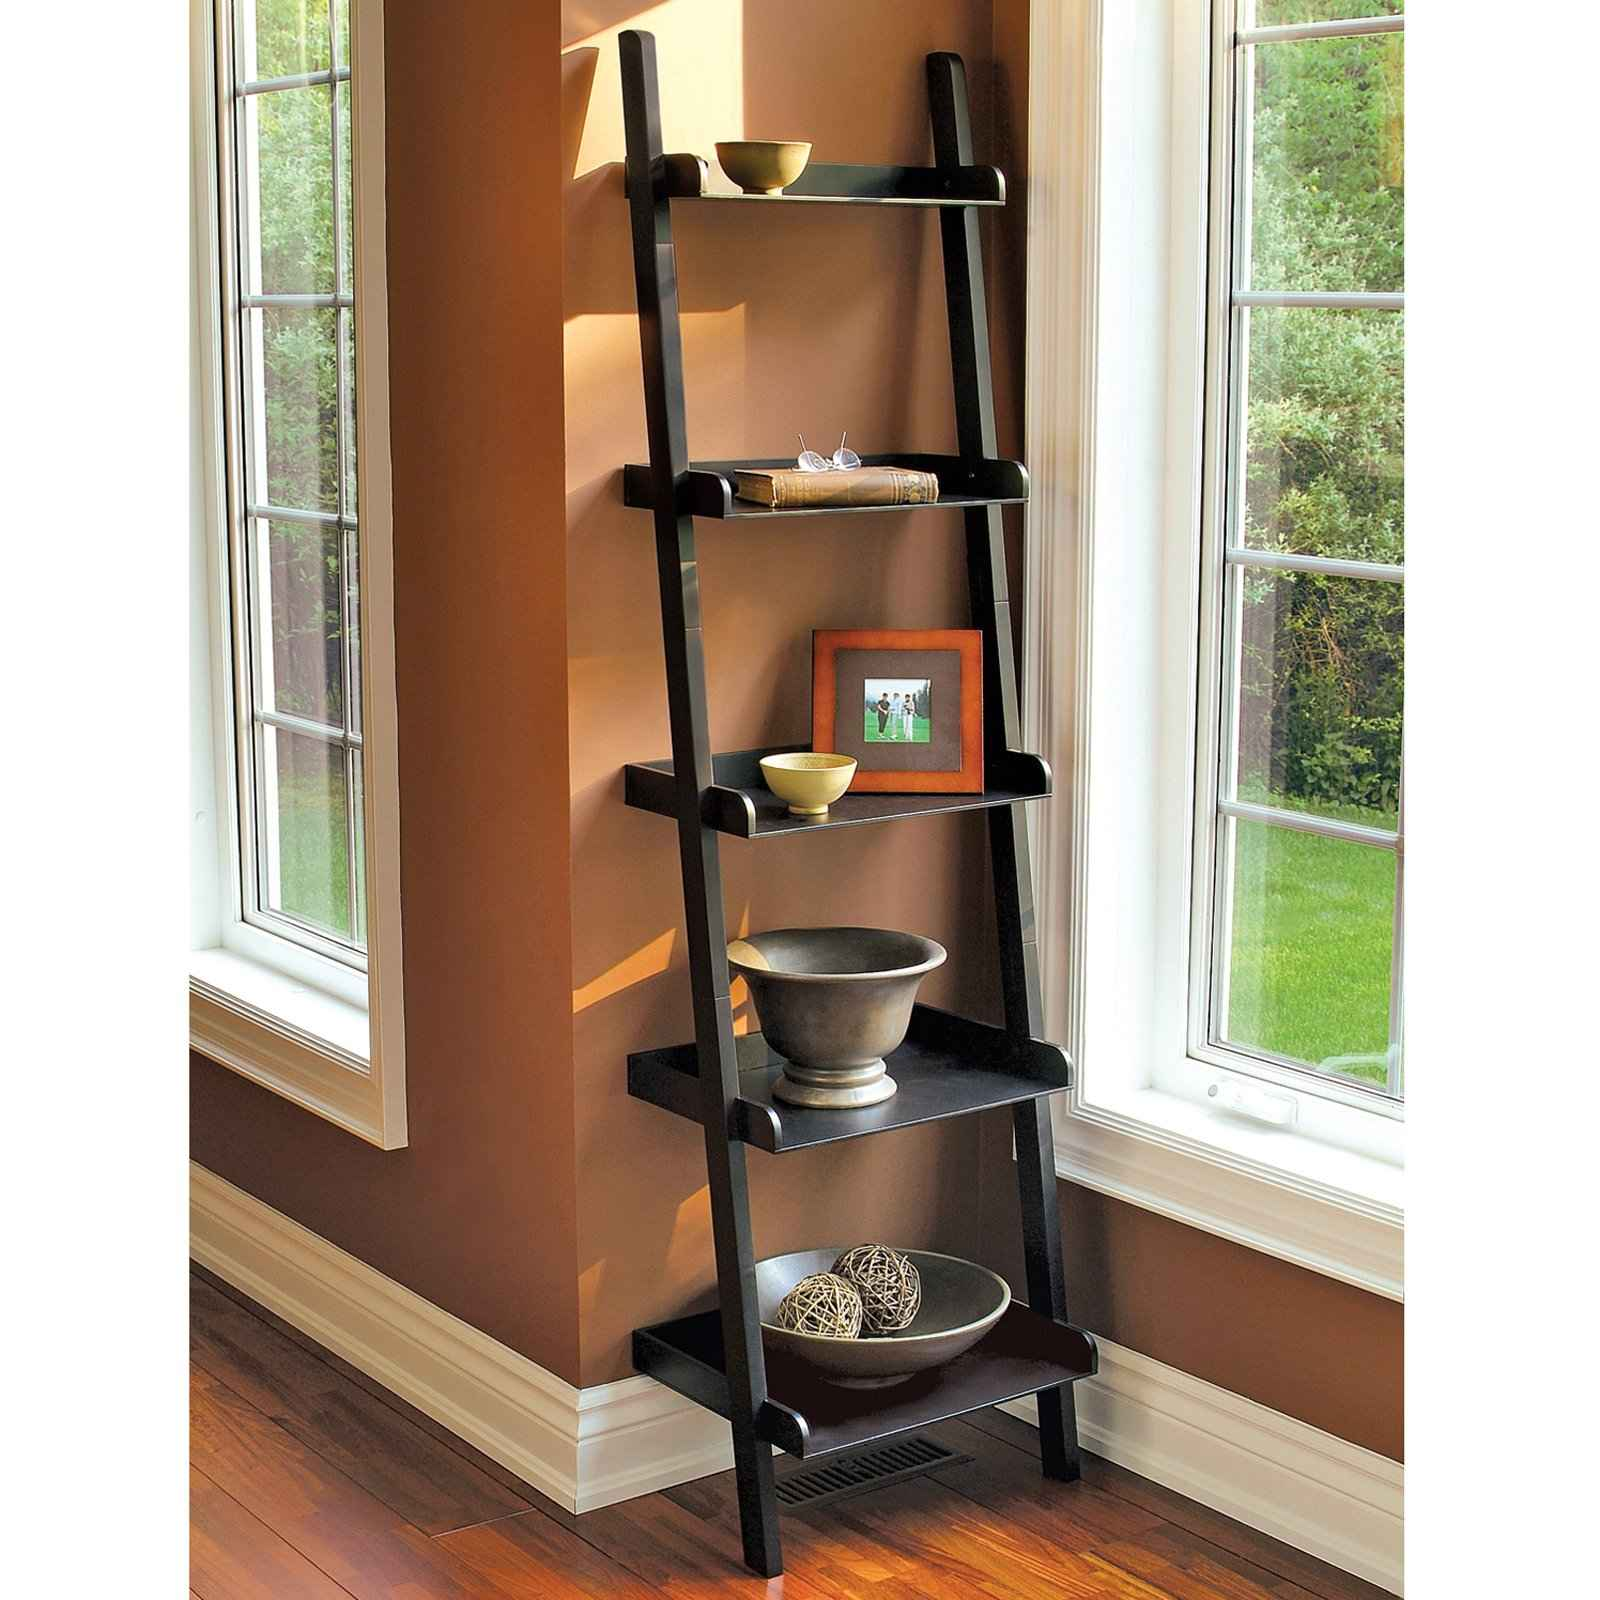 Leaning Ladder Bookshelf For Room Corner Near Windows